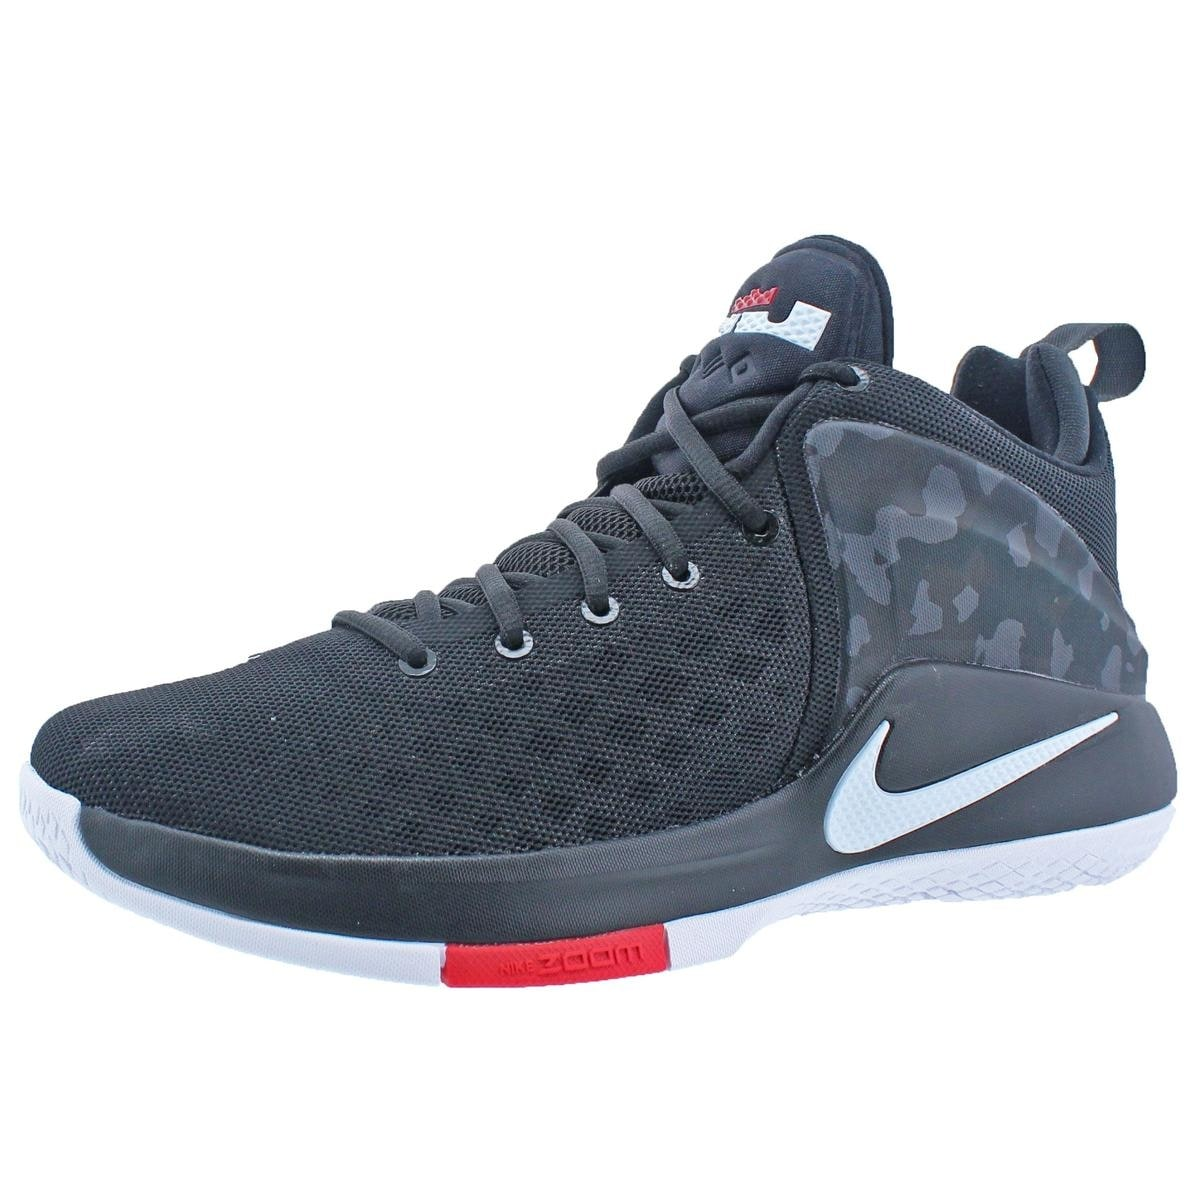 79c3f14442c79 Shop Nike Mens Zoom Witness By LeBron James Basketball Shoes Lightweight  Mid-Top - Free Shipping Today - Overstock - 22311432